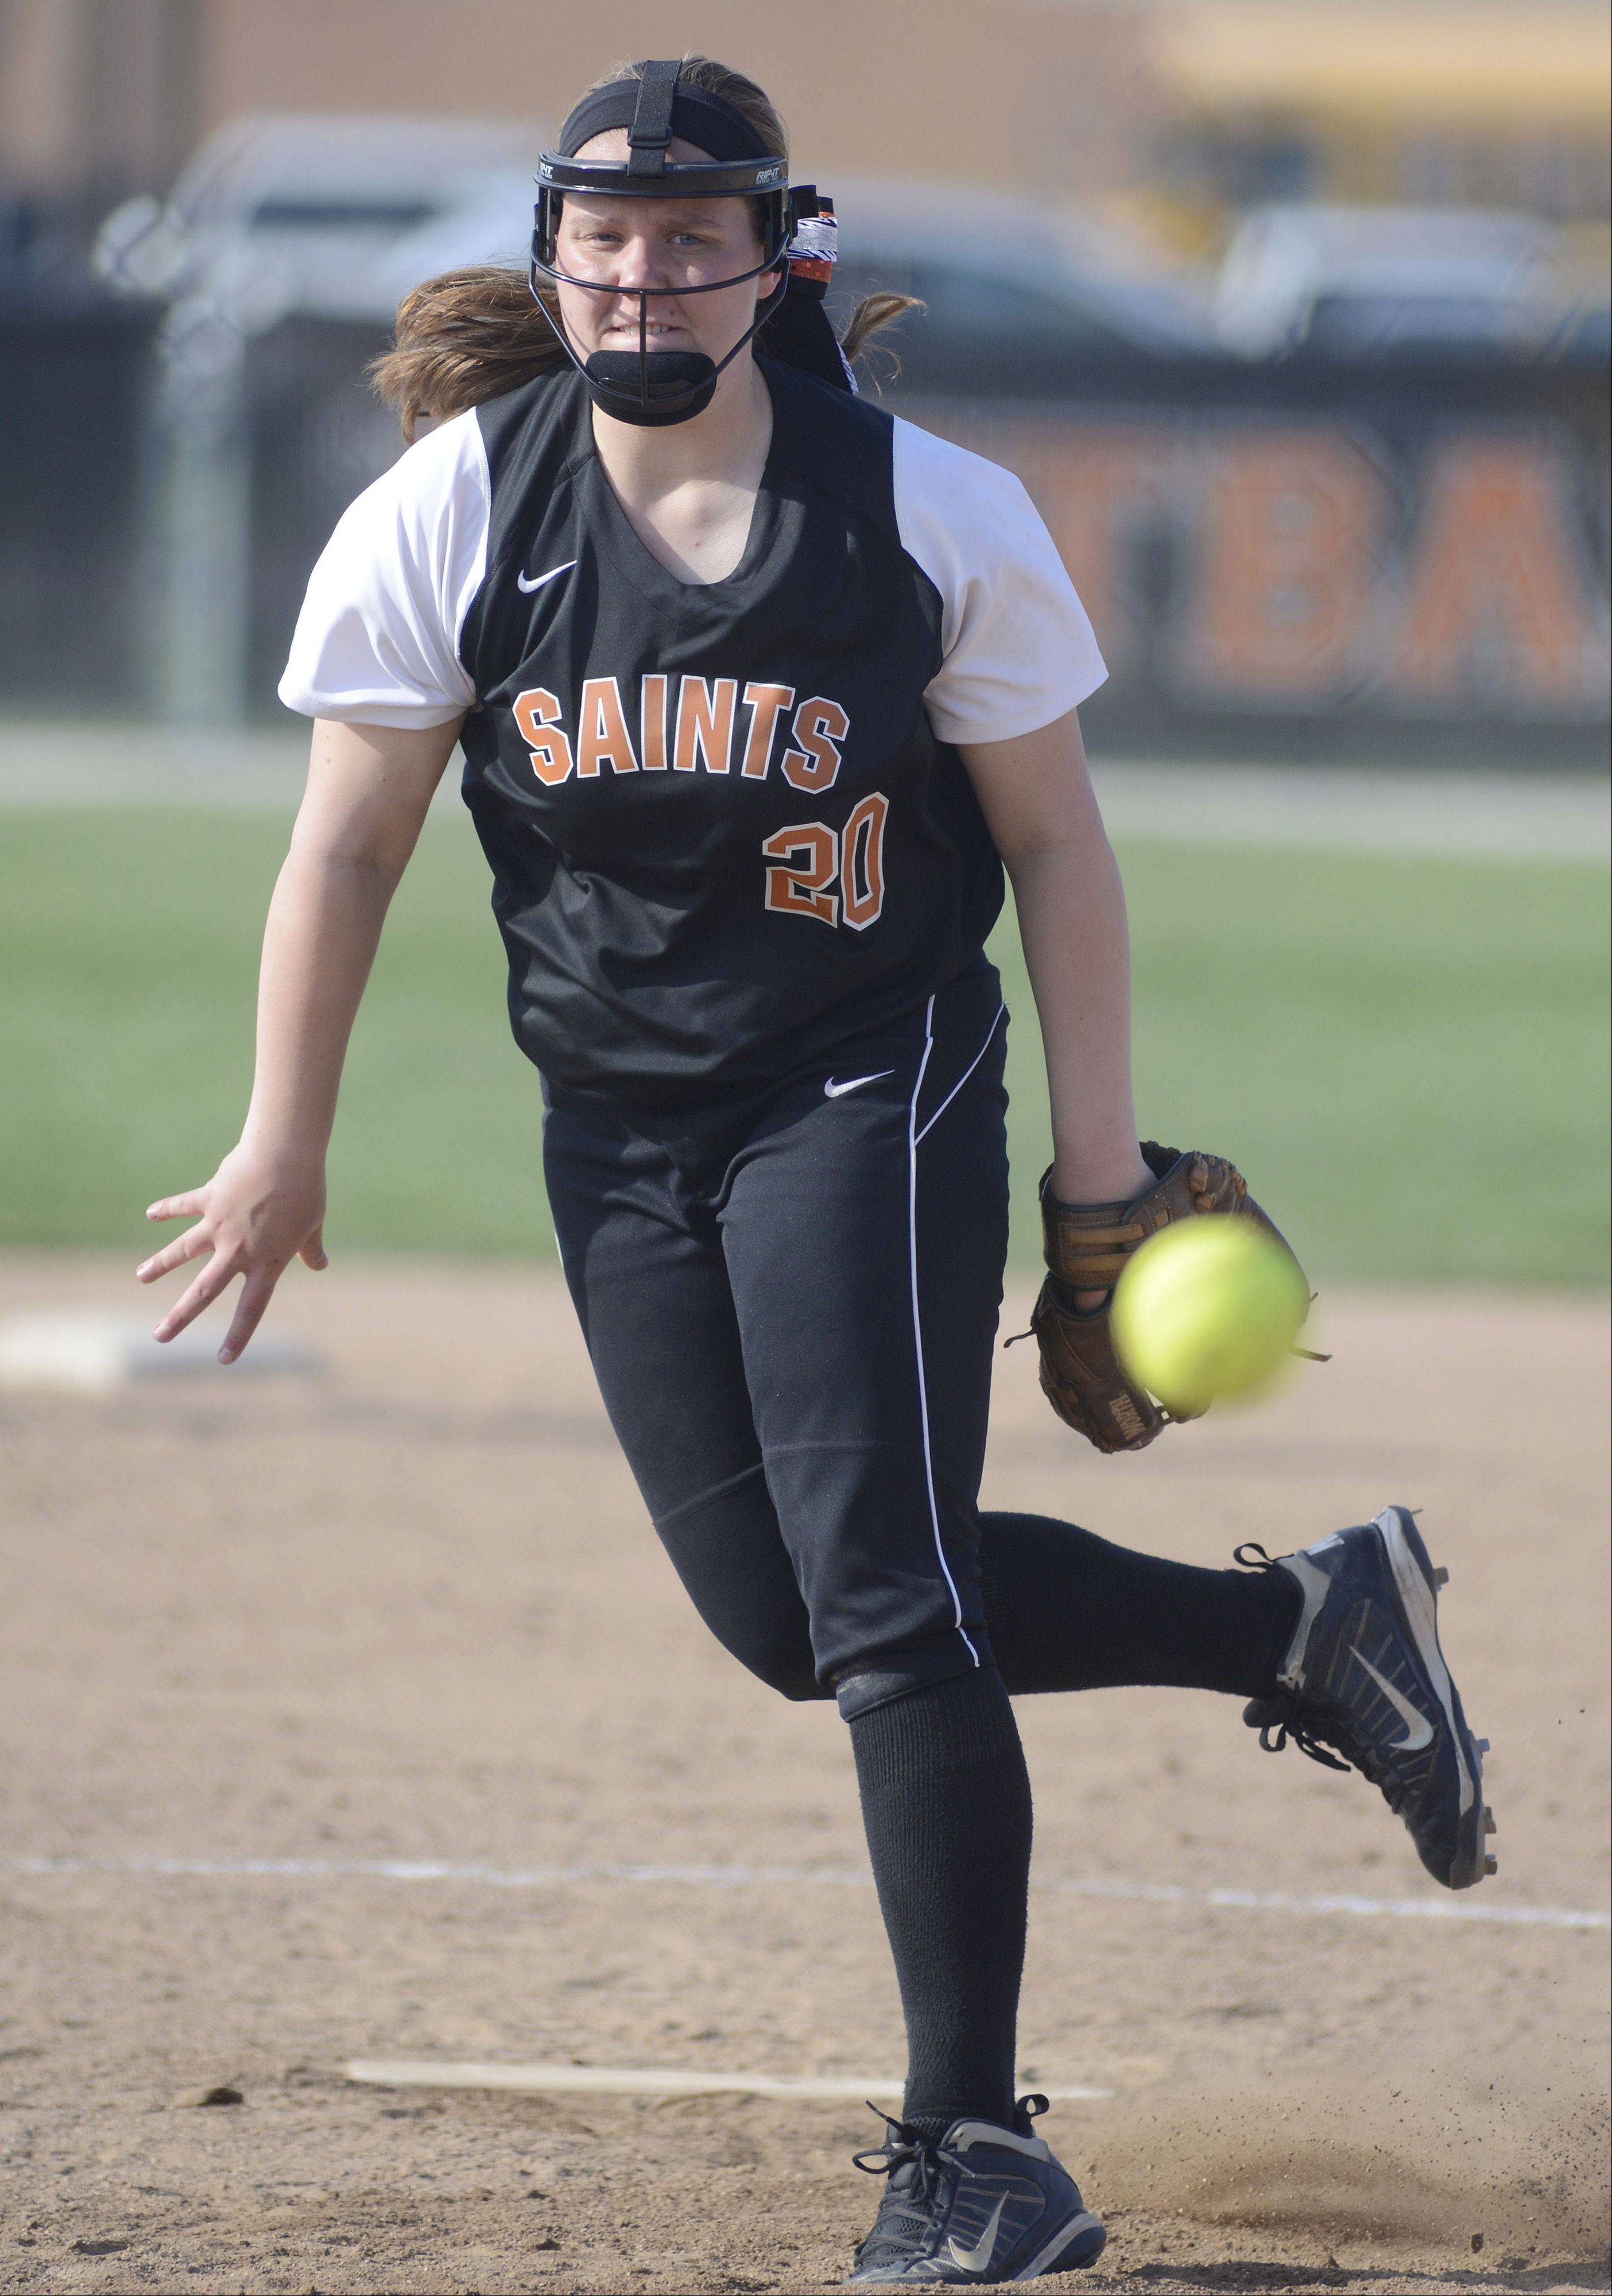 St. Charles East pitcher Haley Beno on Tuesday, April 30.